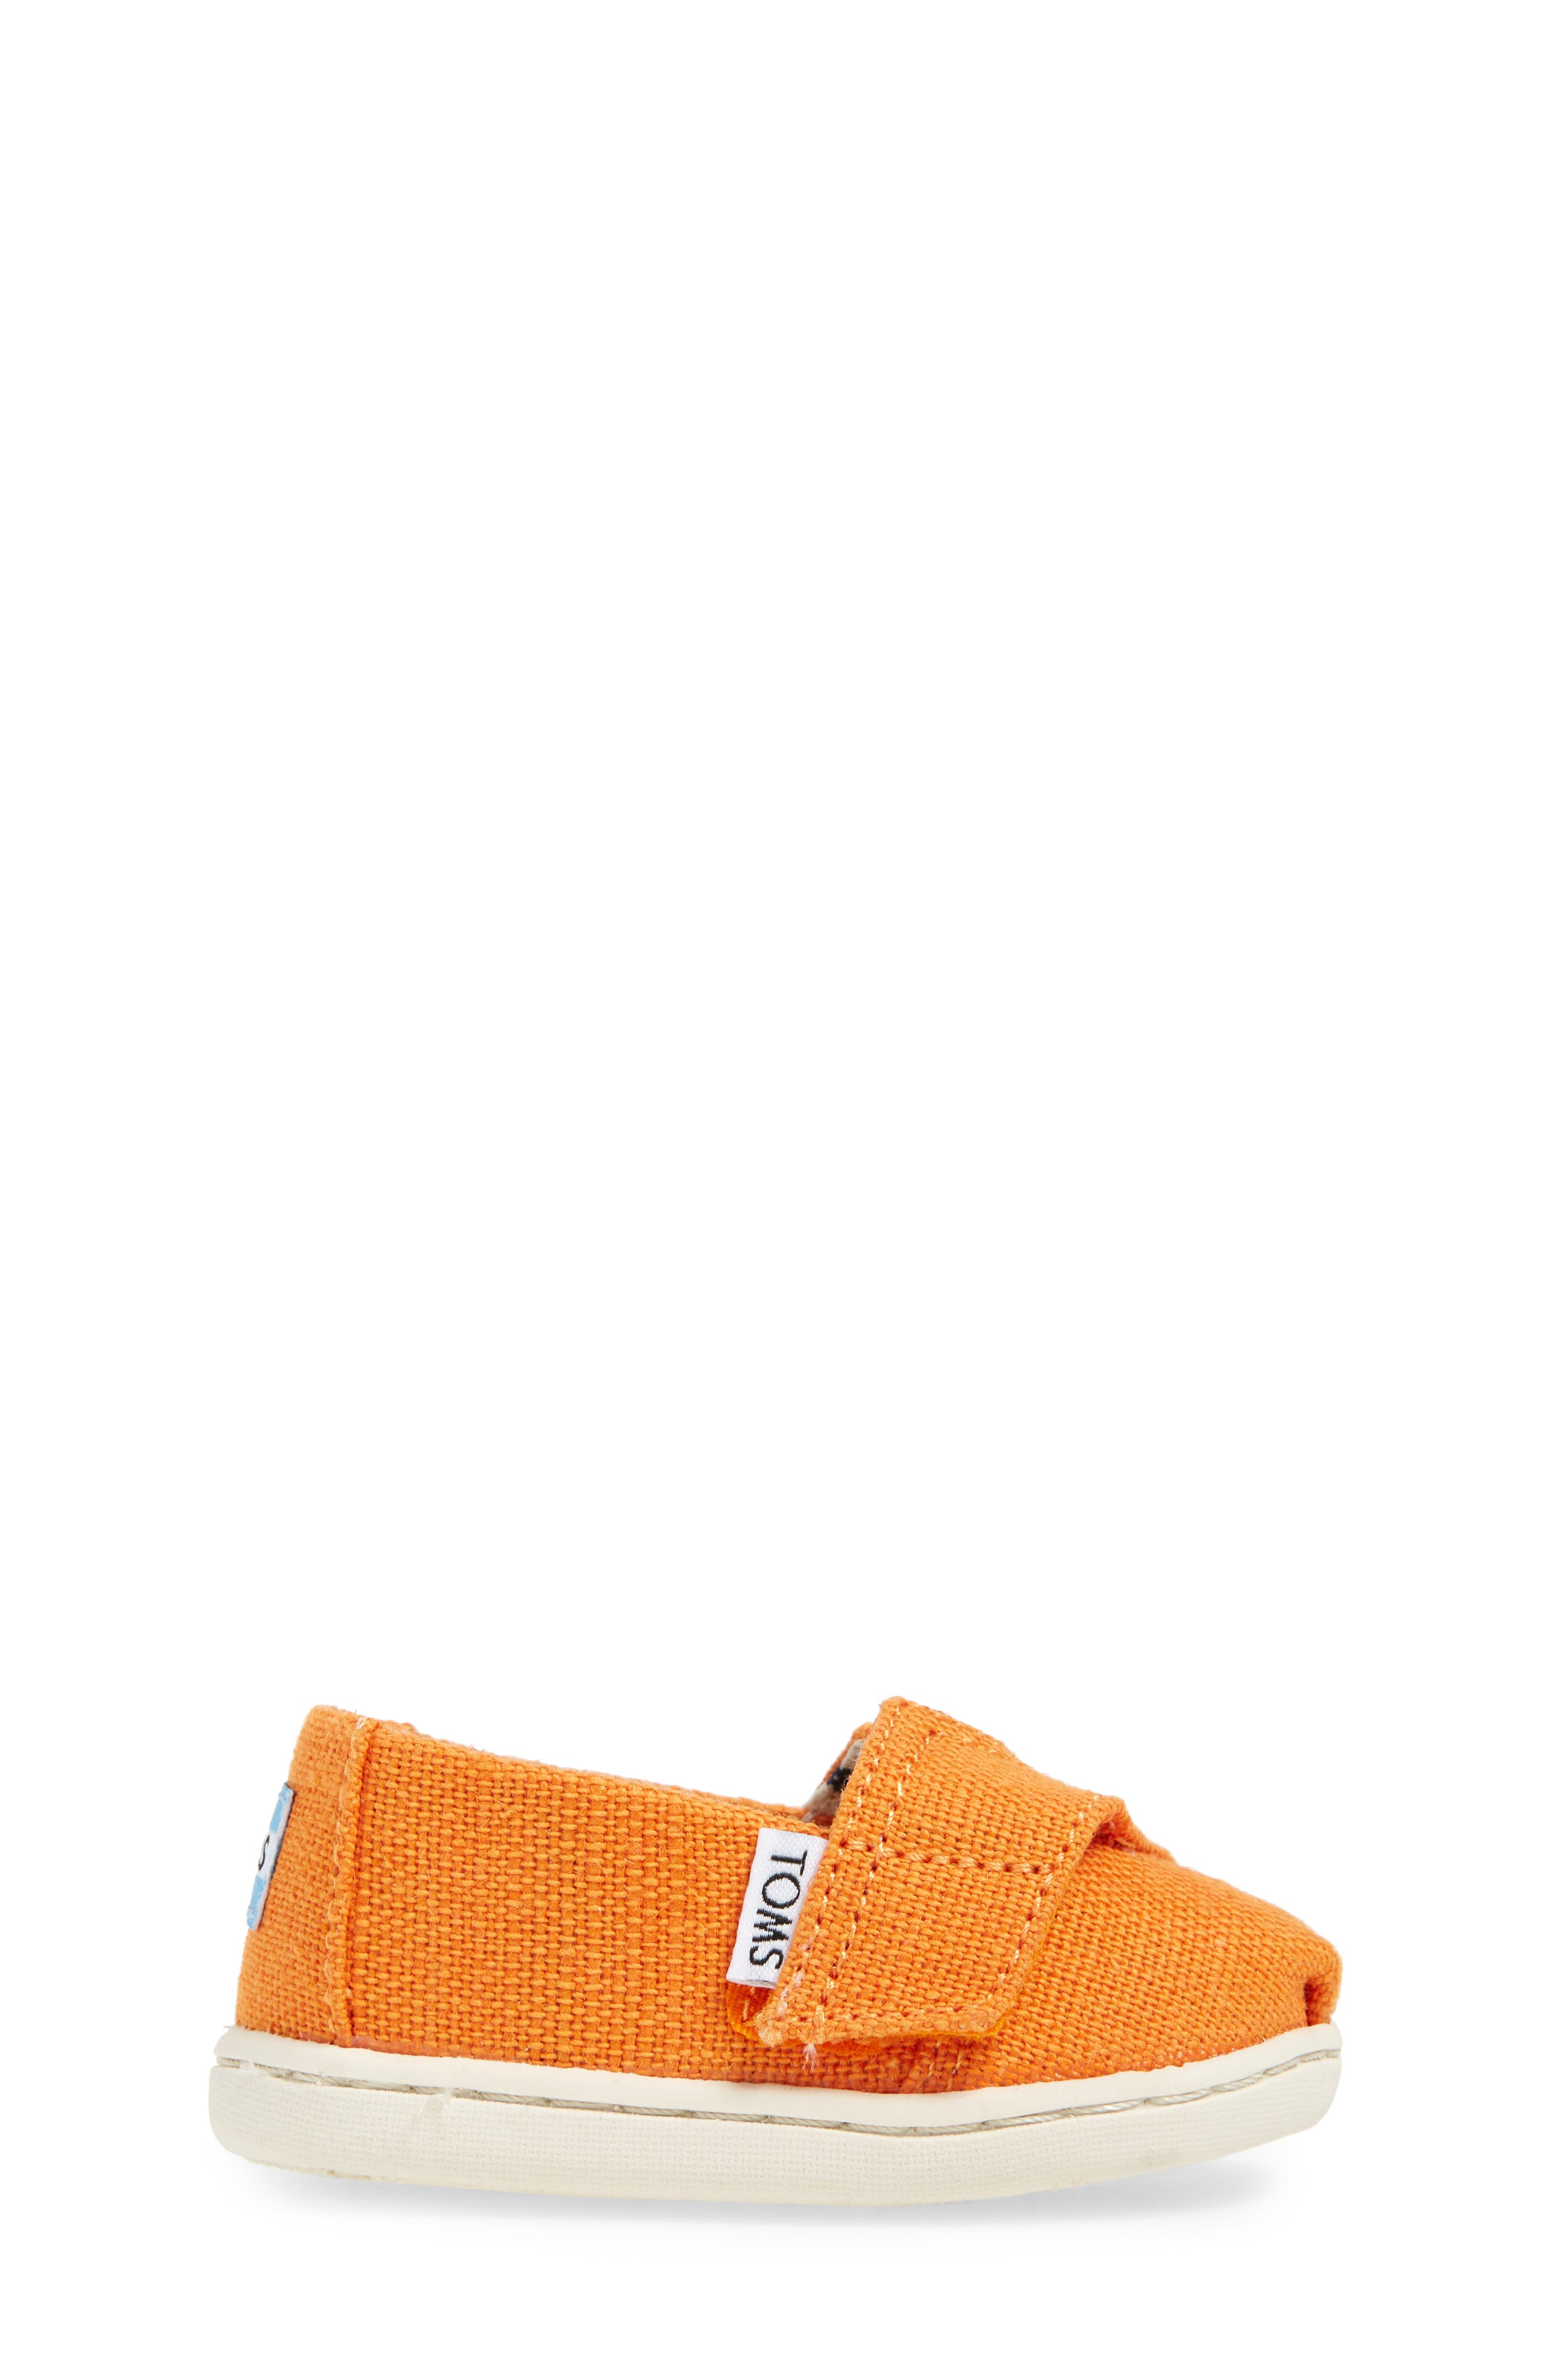 Chambray Slip-On,                             Alternate thumbnail 3, color,                             Russet Orange Heritage Canvas